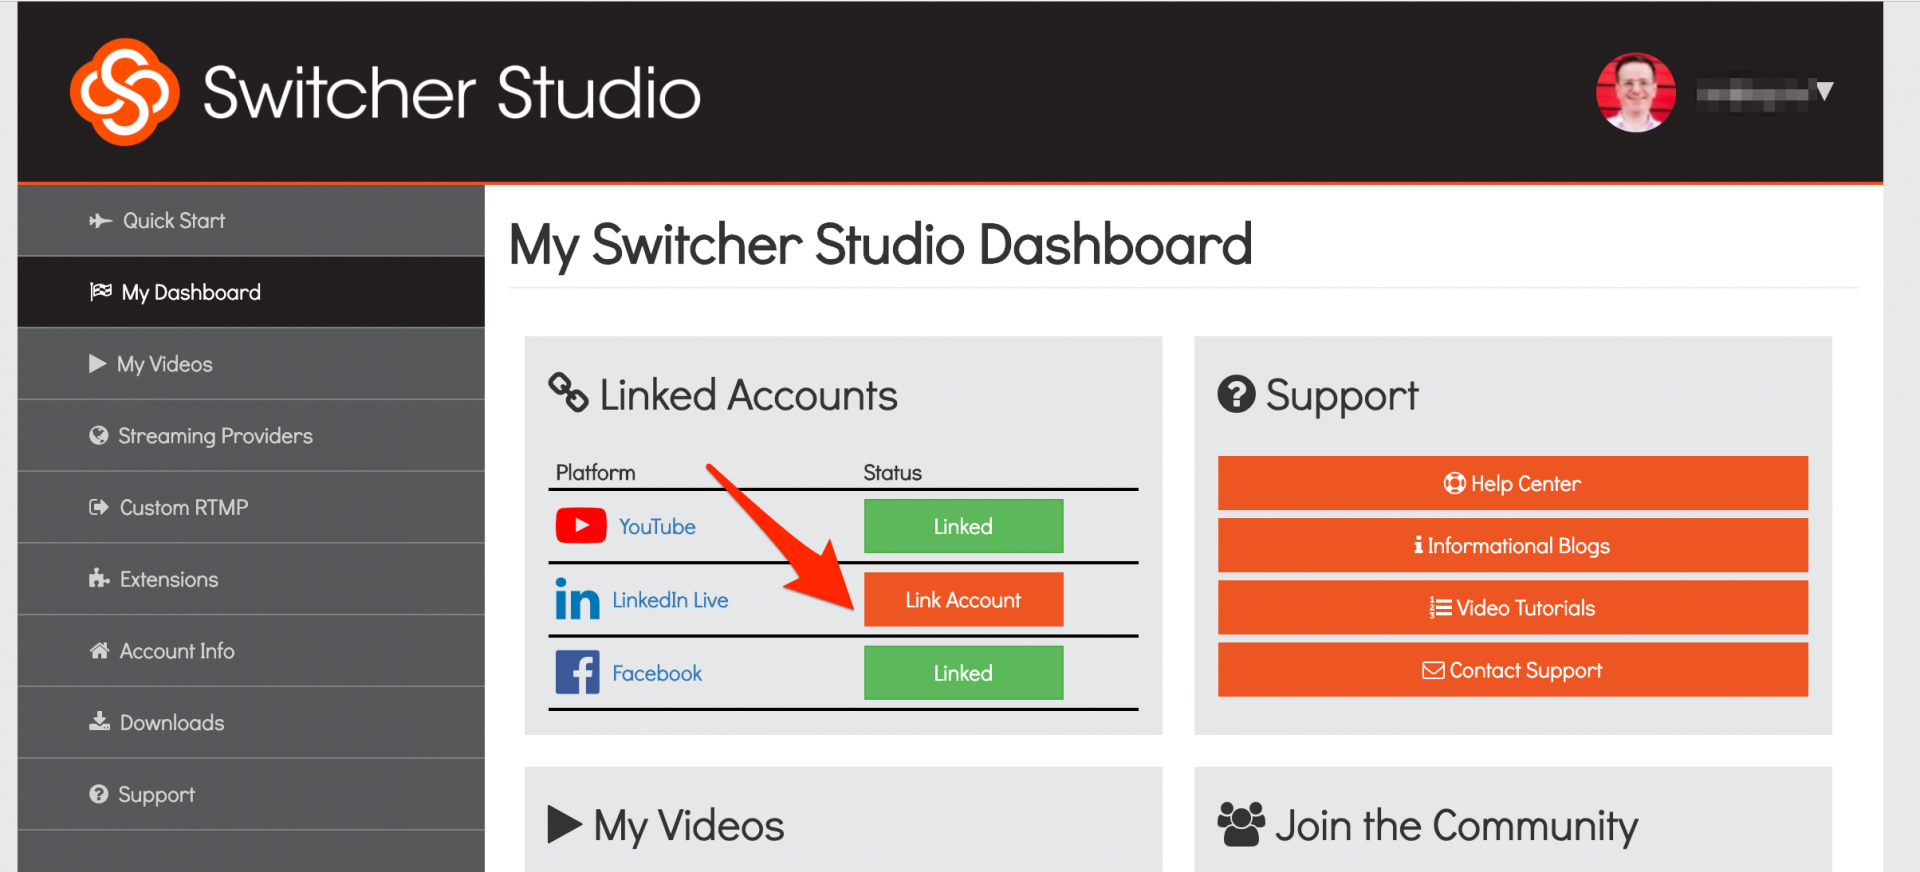 Adding LinkedIn Live in the SwitcherStudio Dashboard